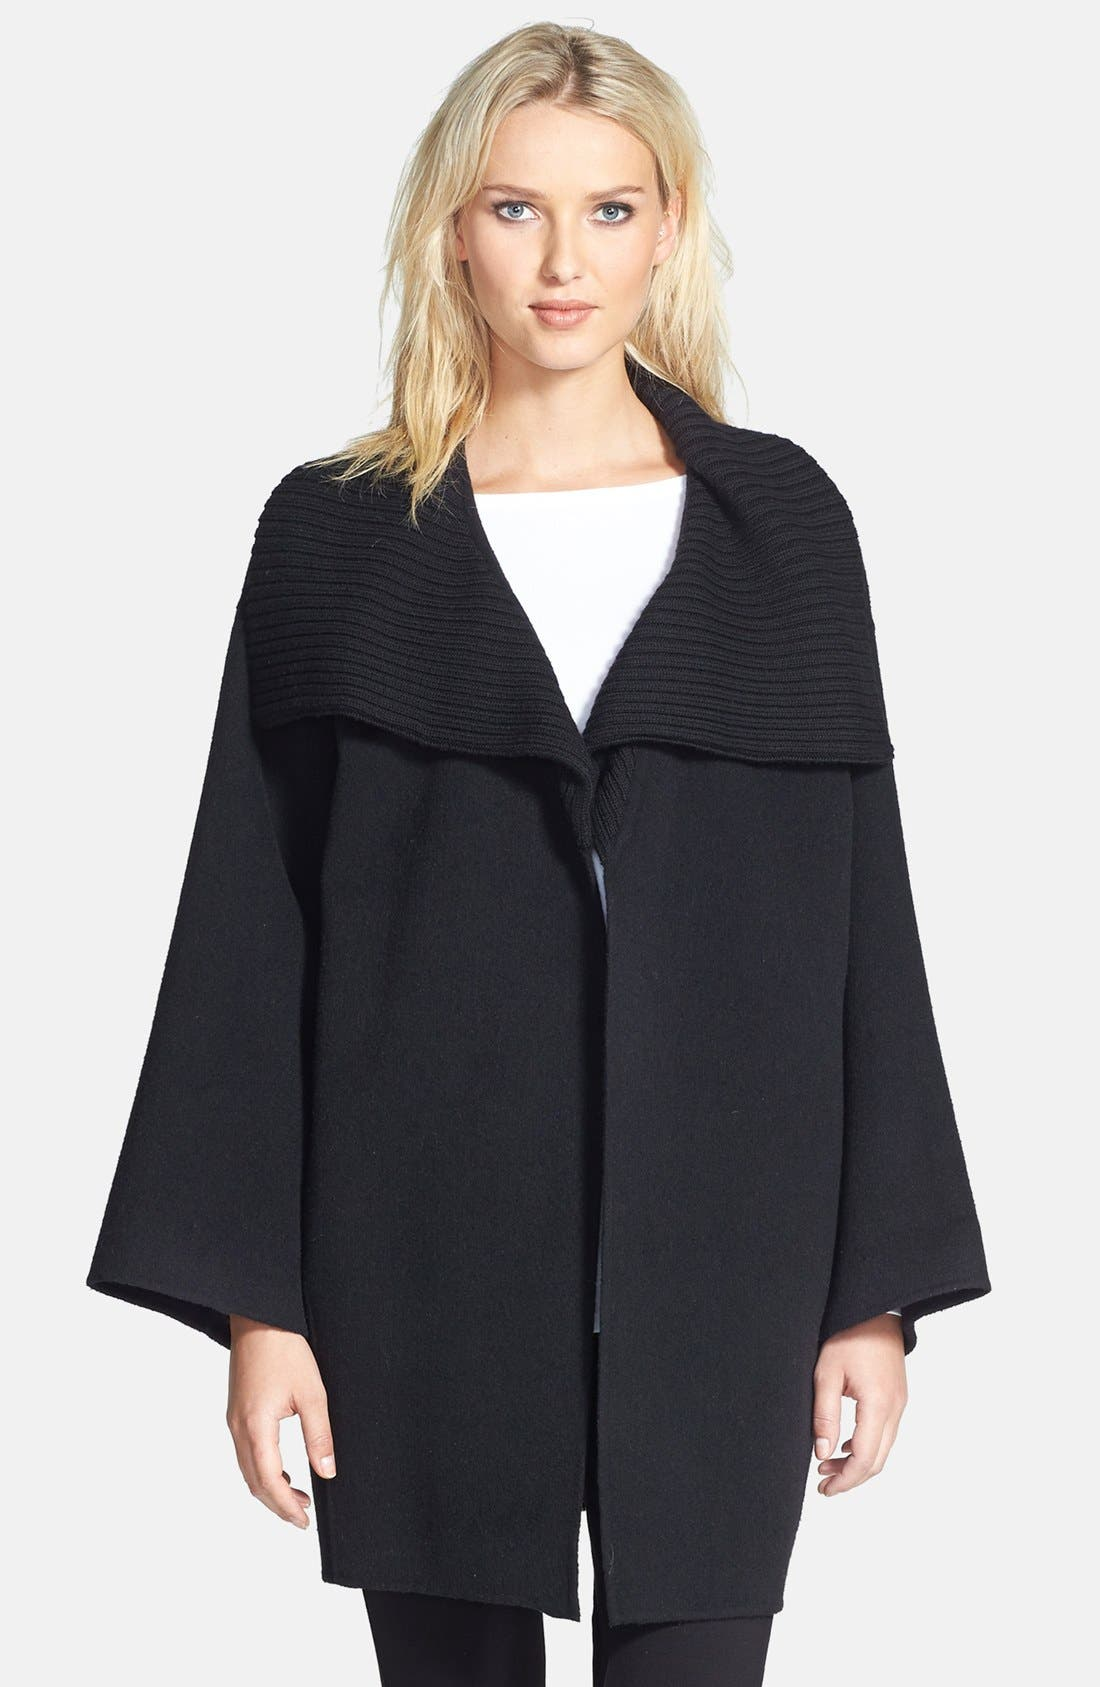 Alternate Image 1 Selected - Eileen Fisher Knit Funnel Collar Wool Blend Coat (Petite) (Online Only)